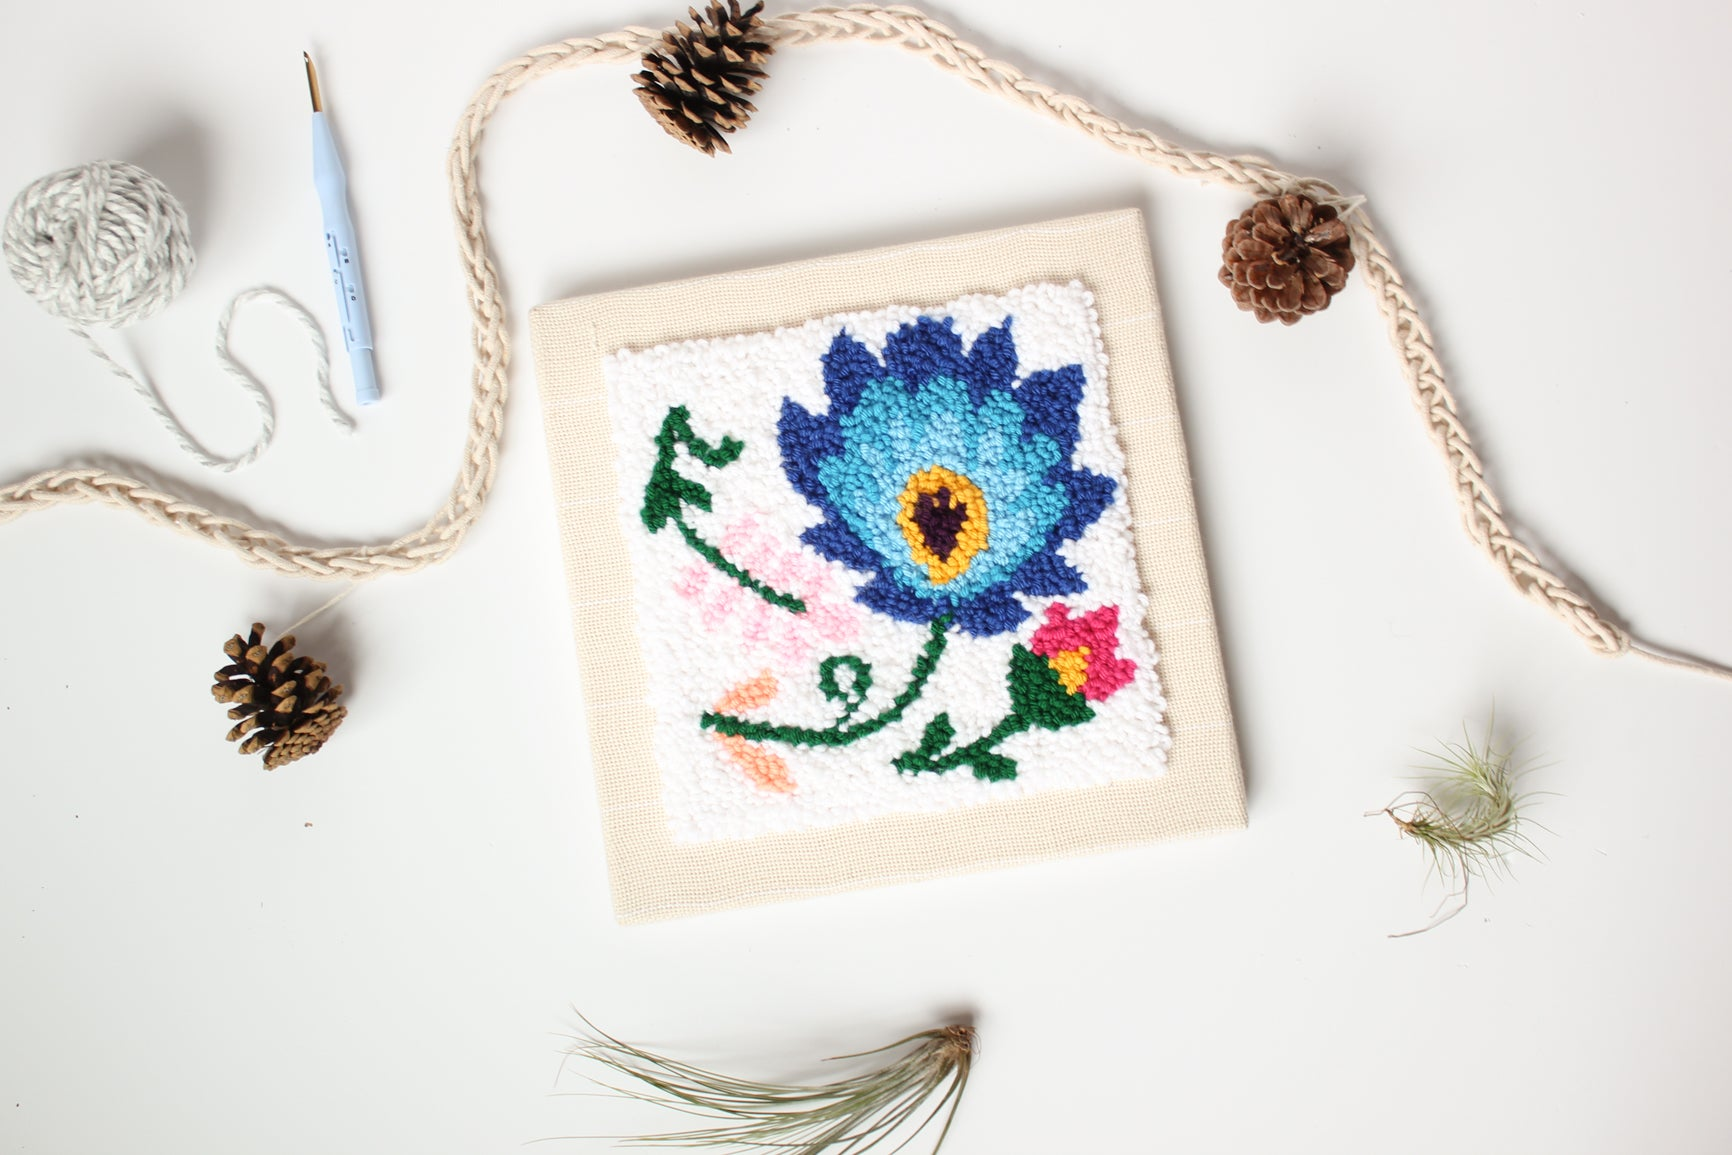 floral punch needle kit